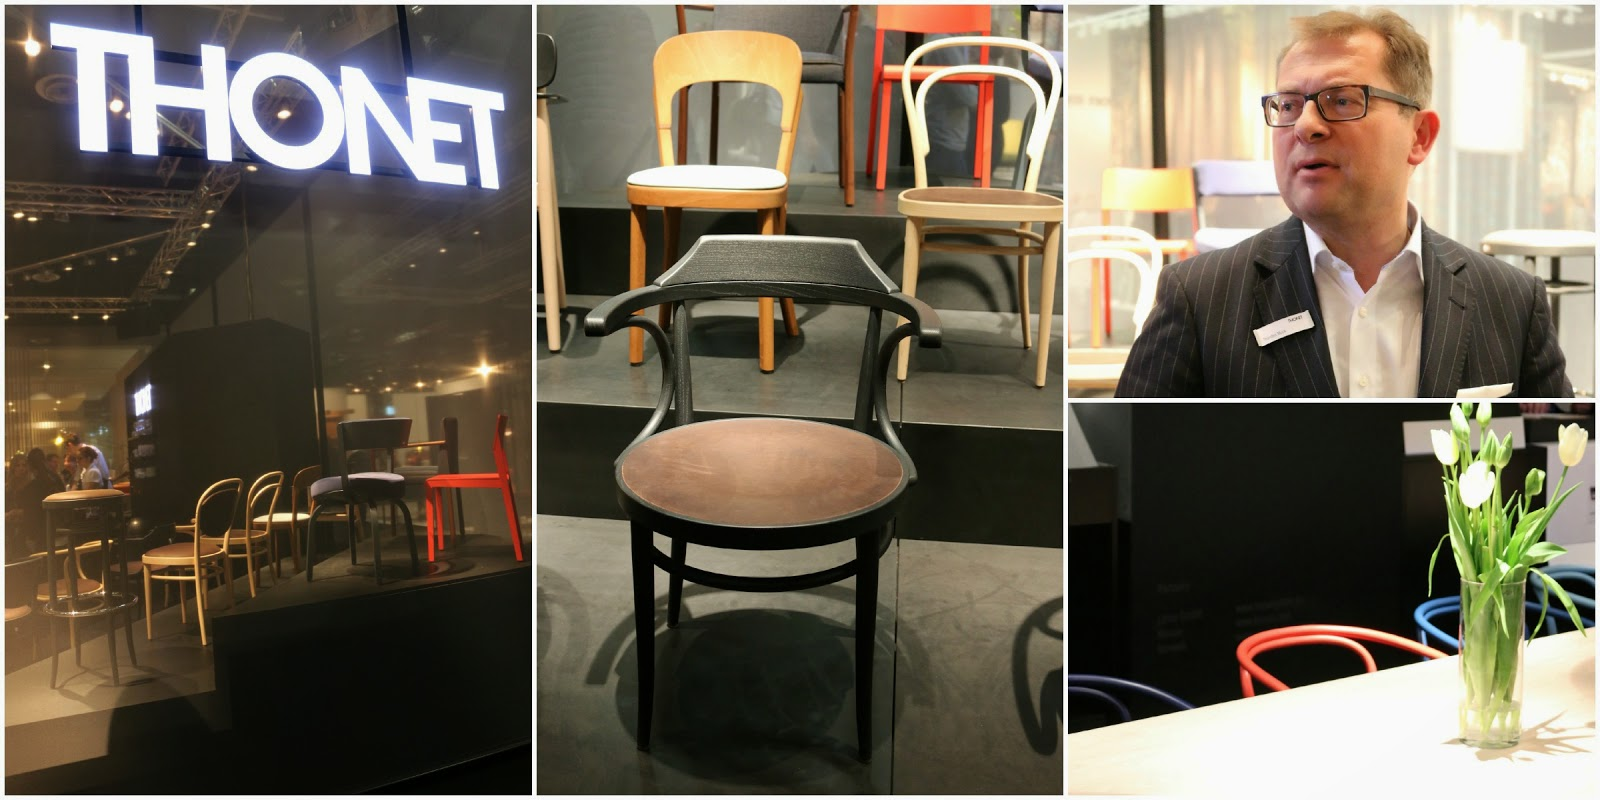 Messe, Möbel, Design, Interior, Blogger, Tom Dixon, VITRA, Thonet, Verband der Deutschen Tapetenindustrie, Kettnaker, Menu, string